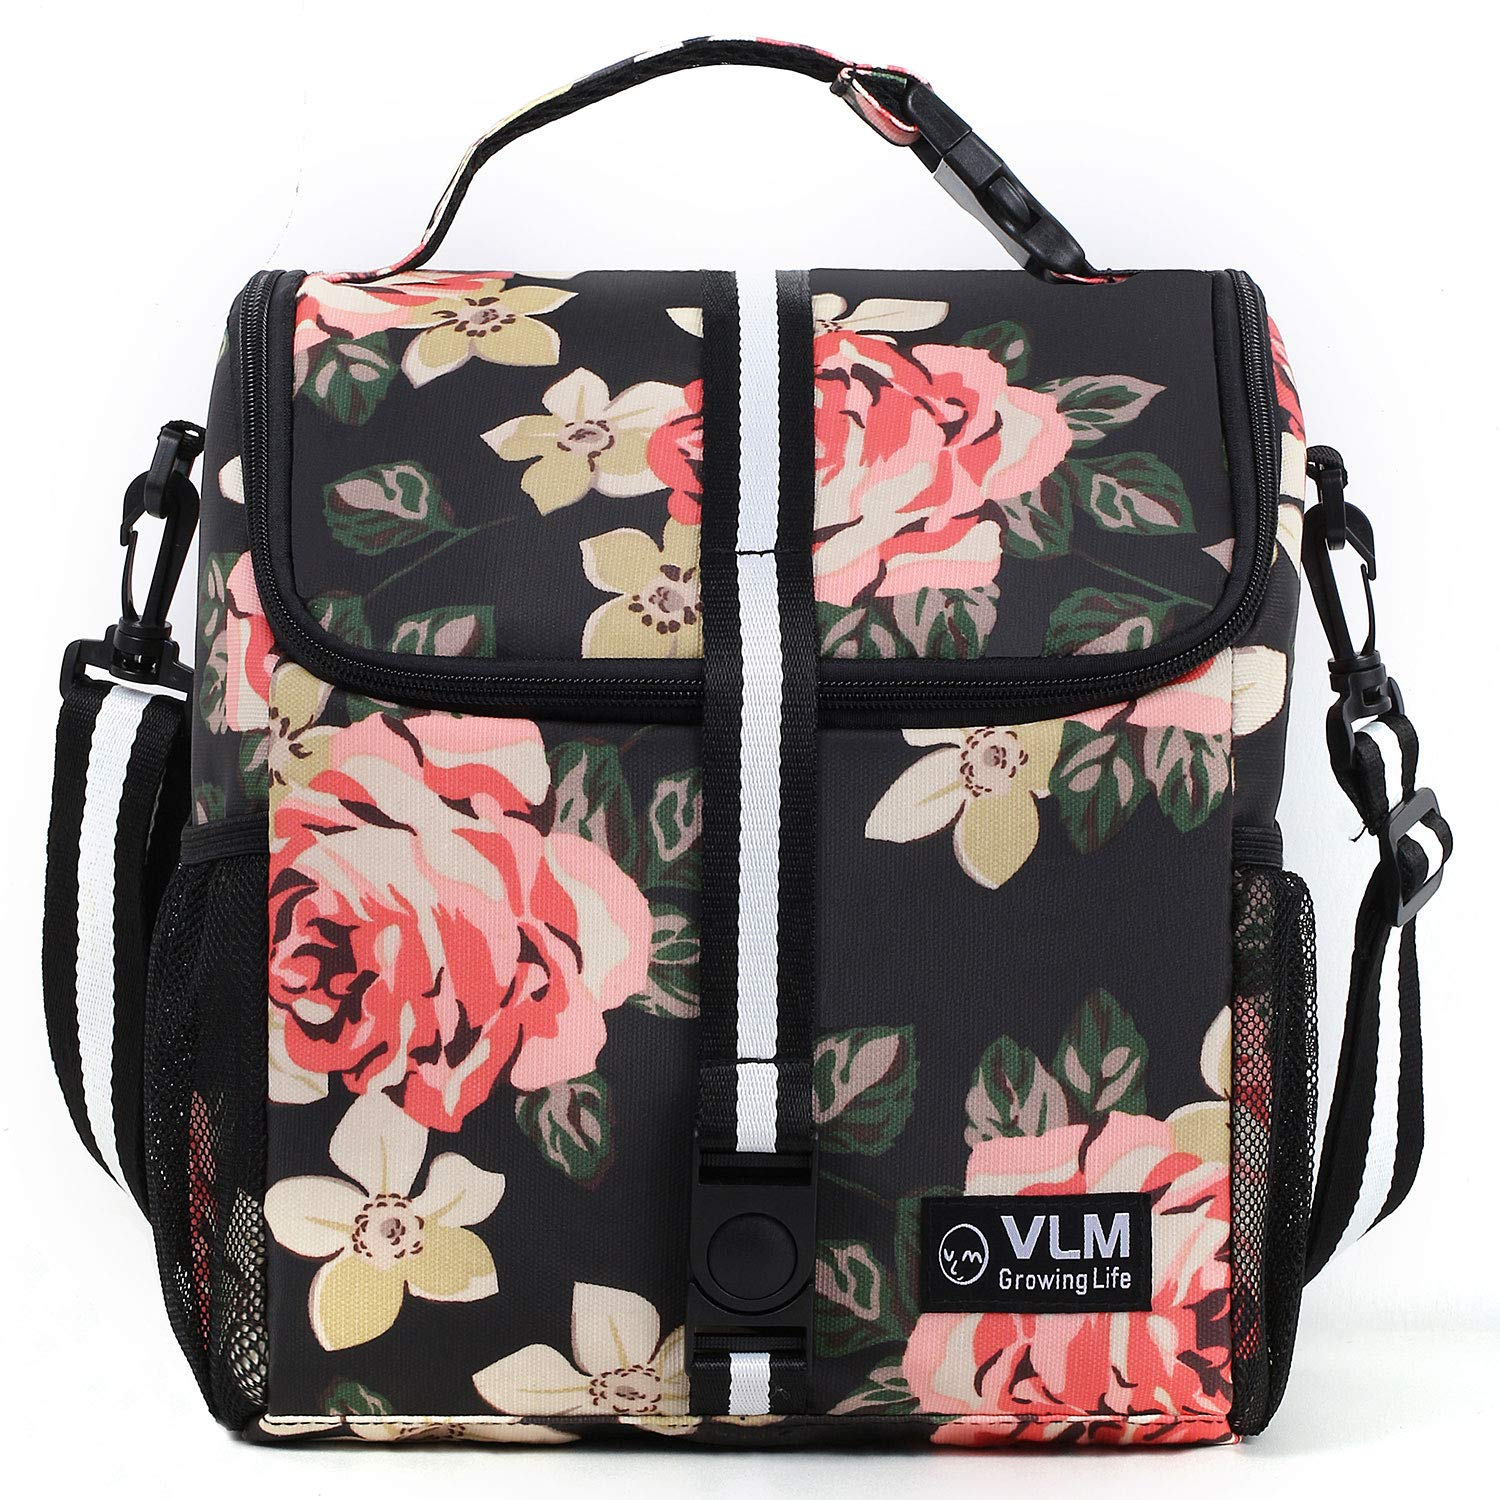 VLM Lunch Bag for Women,Water/Leakproof Insulated Lunch Box with Adjustable Shoulder Strap Foldable Reusable Zipper Cooler Lunch Tote Bag for Work,School,Picnic,Camping(Floral 1) by VLM